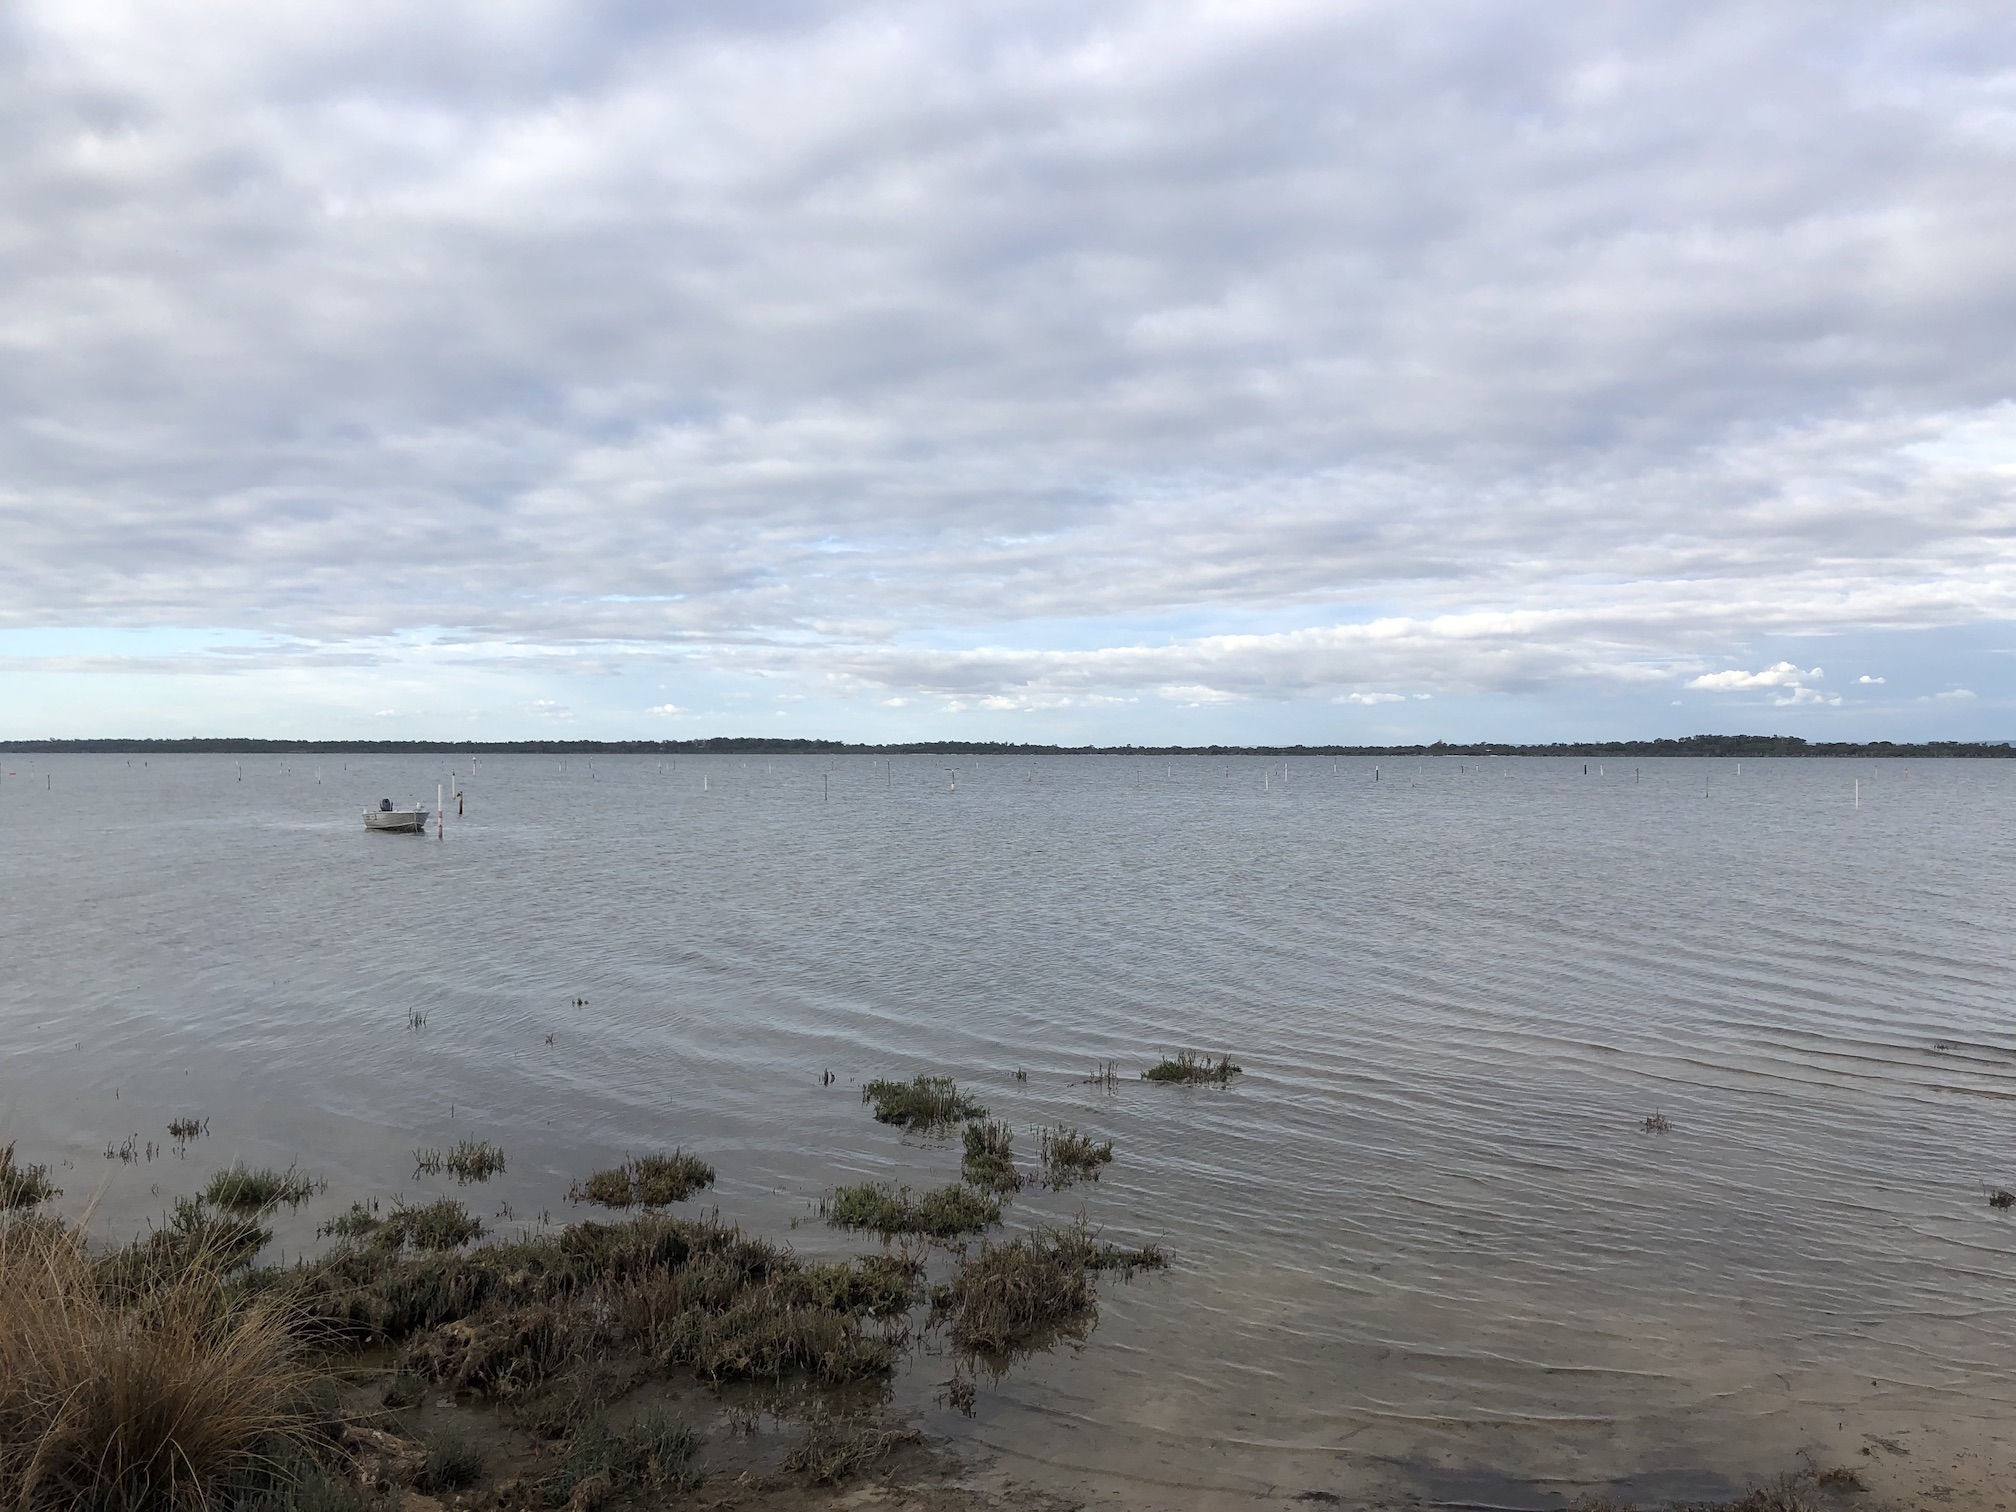 In better times, the Peel Estuary is a peaceful escape